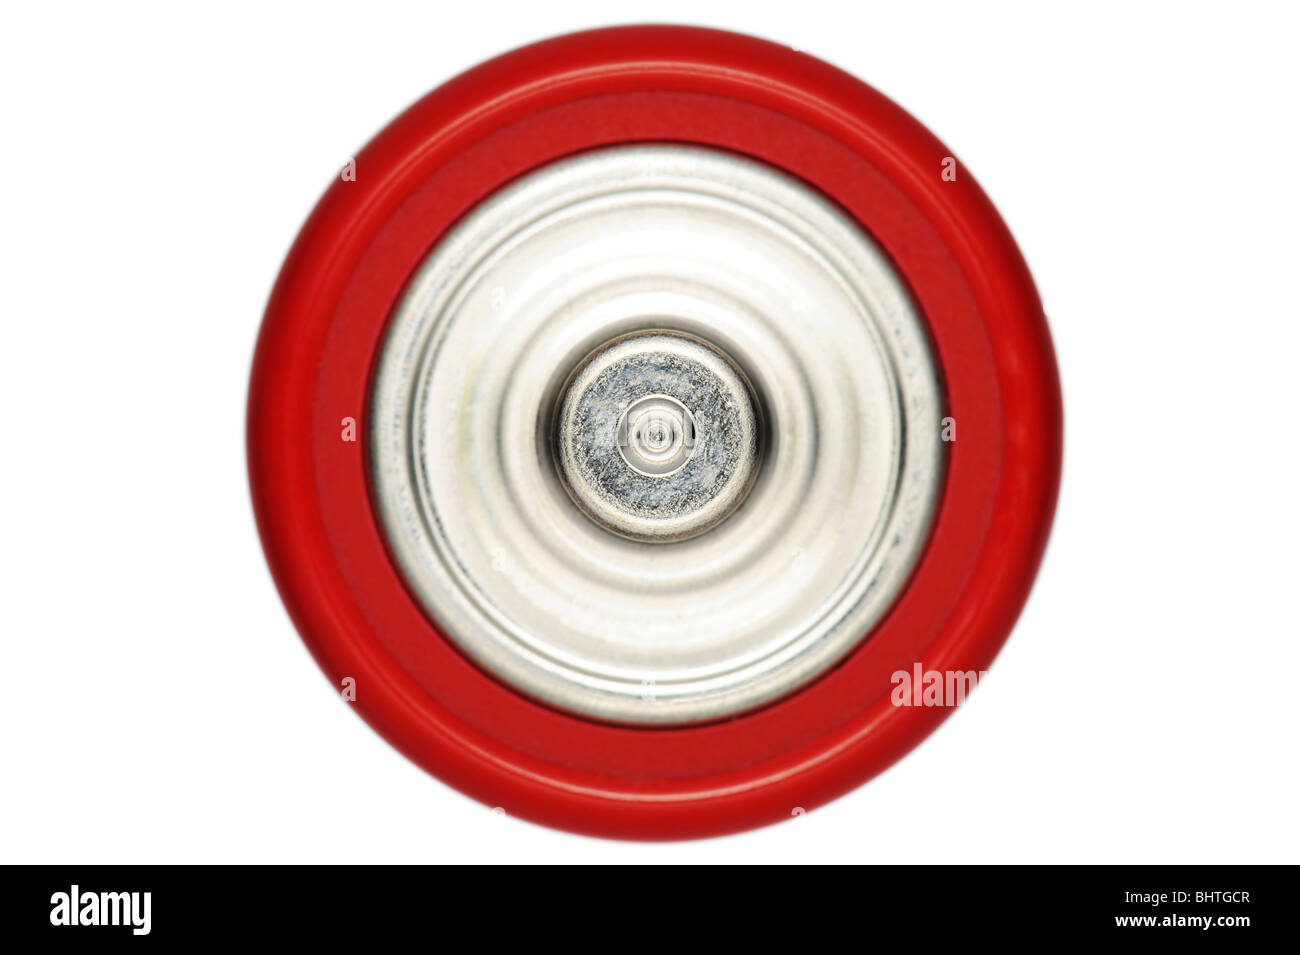 The top of a battery - Stock Image